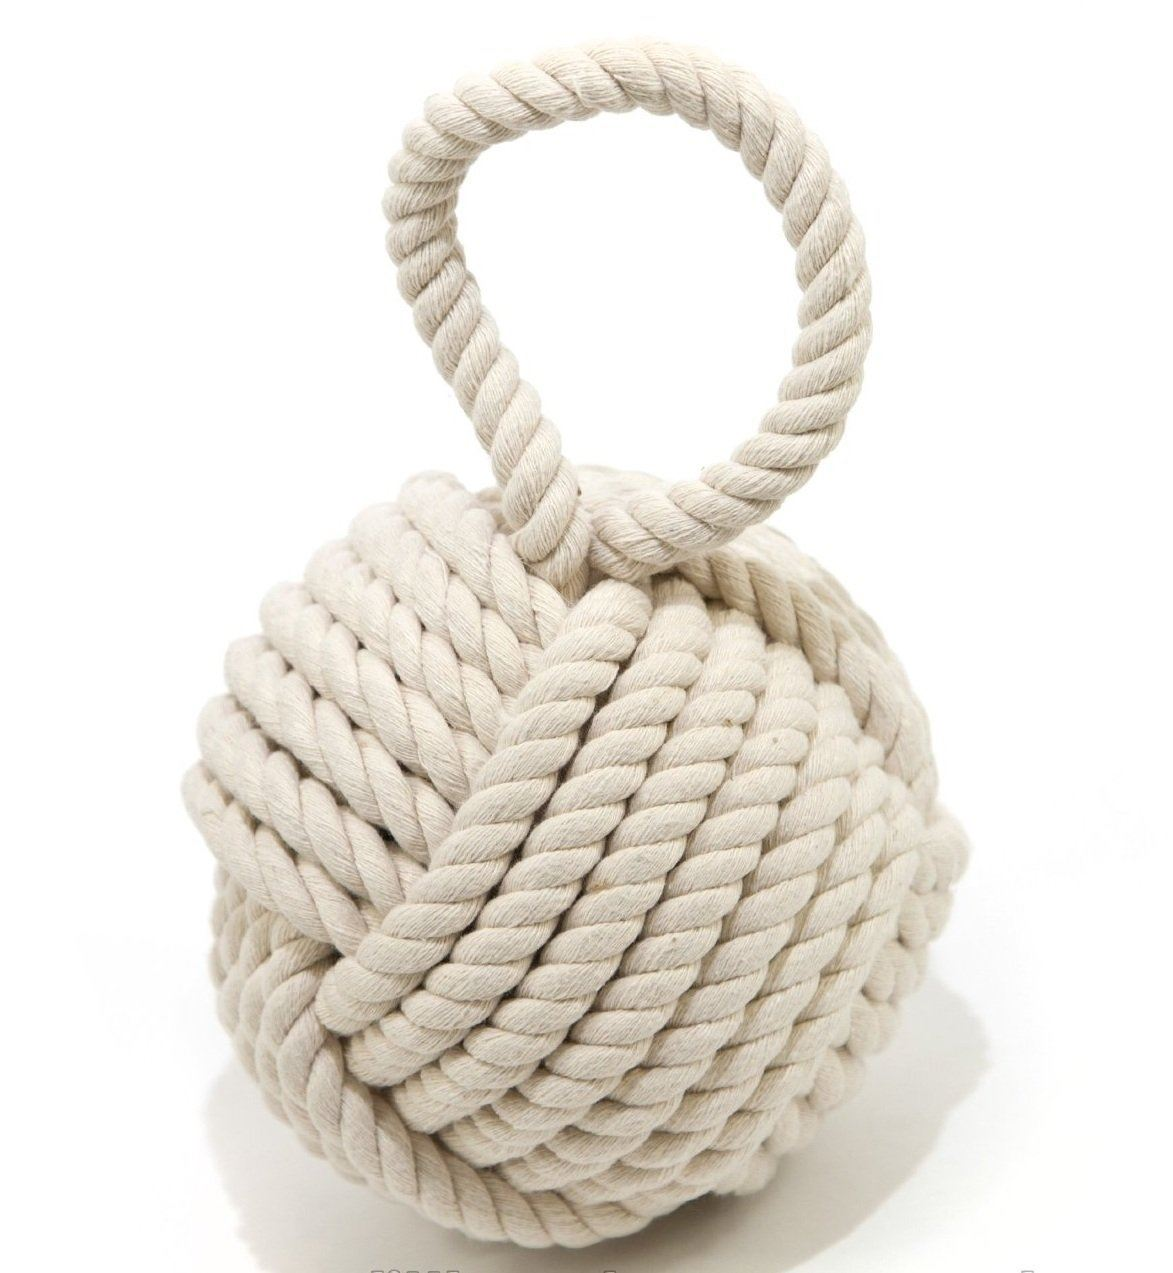 Nautical Doorstop Quality Nautical Rope Knot Monkeys Fist Door Stop Cream